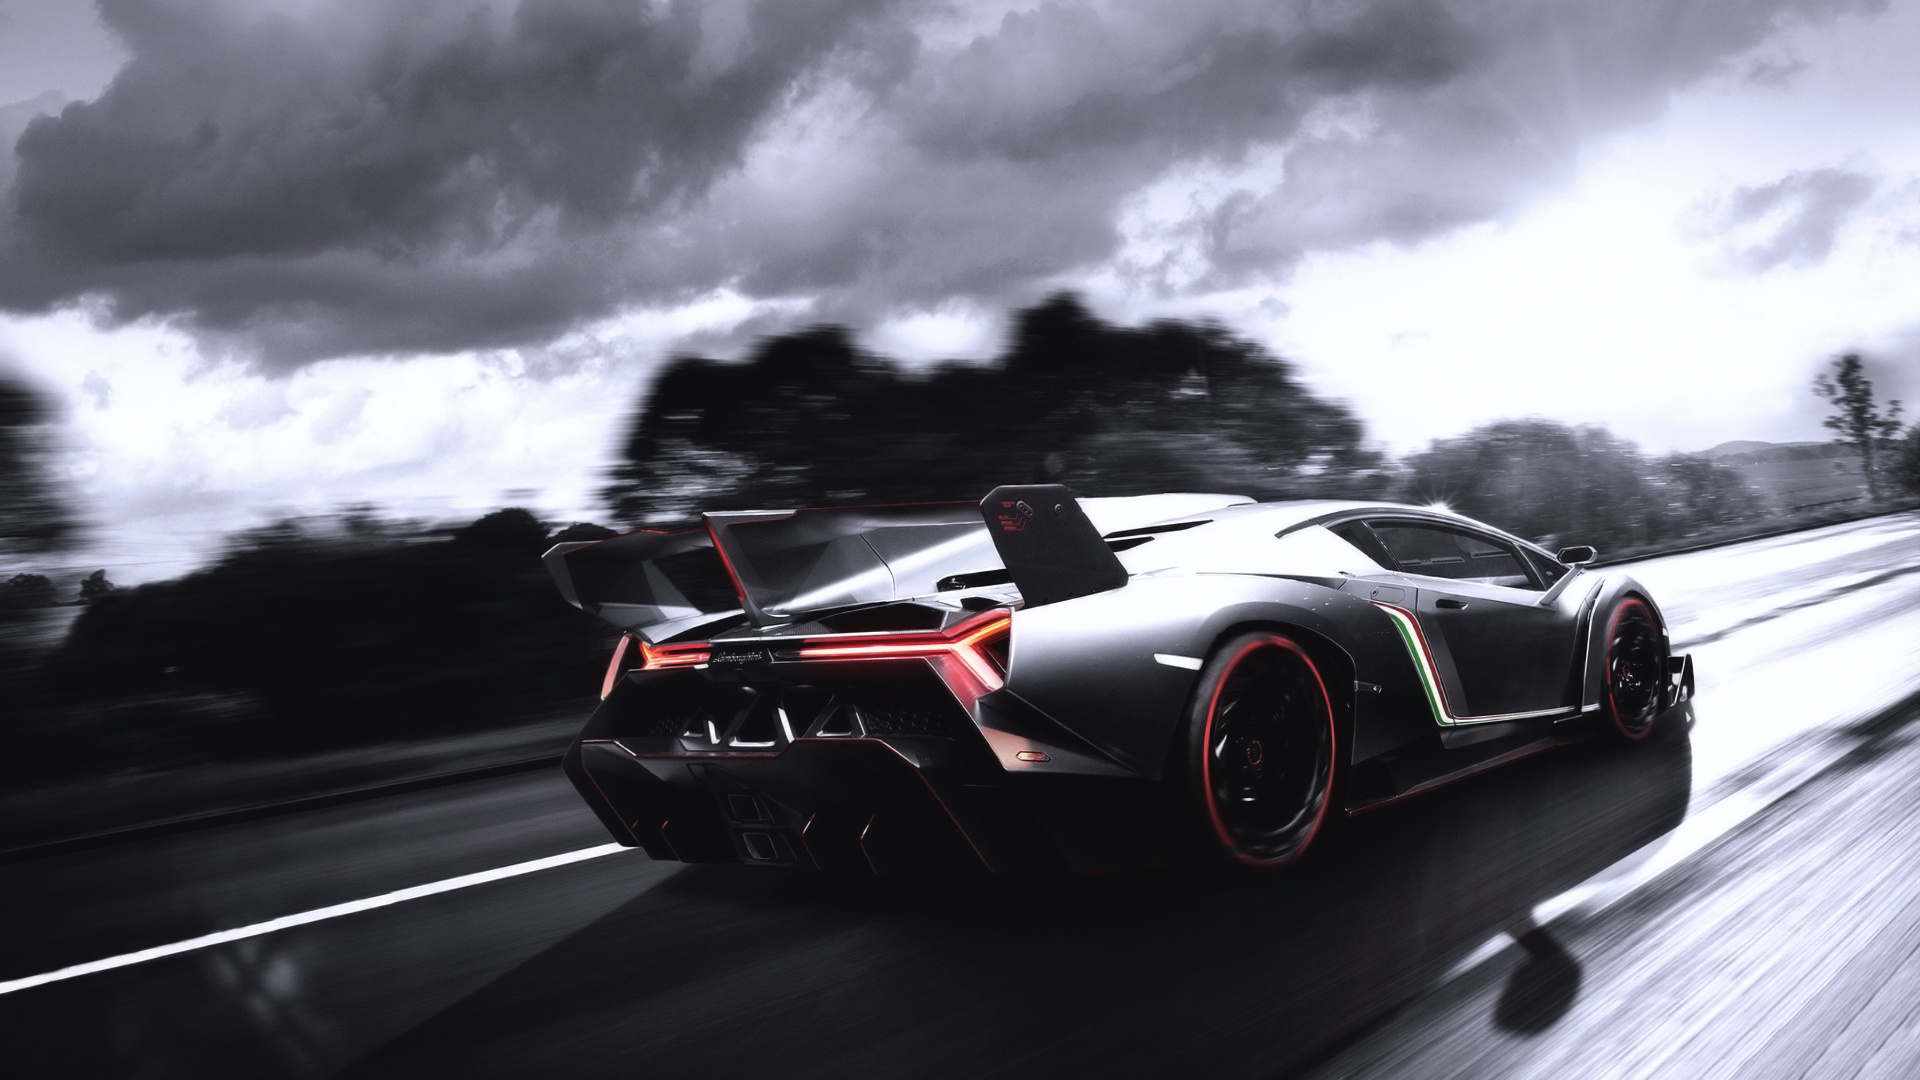 Full HD 1080p Cars Wallpapers, Desktop Backgrounds HD ...